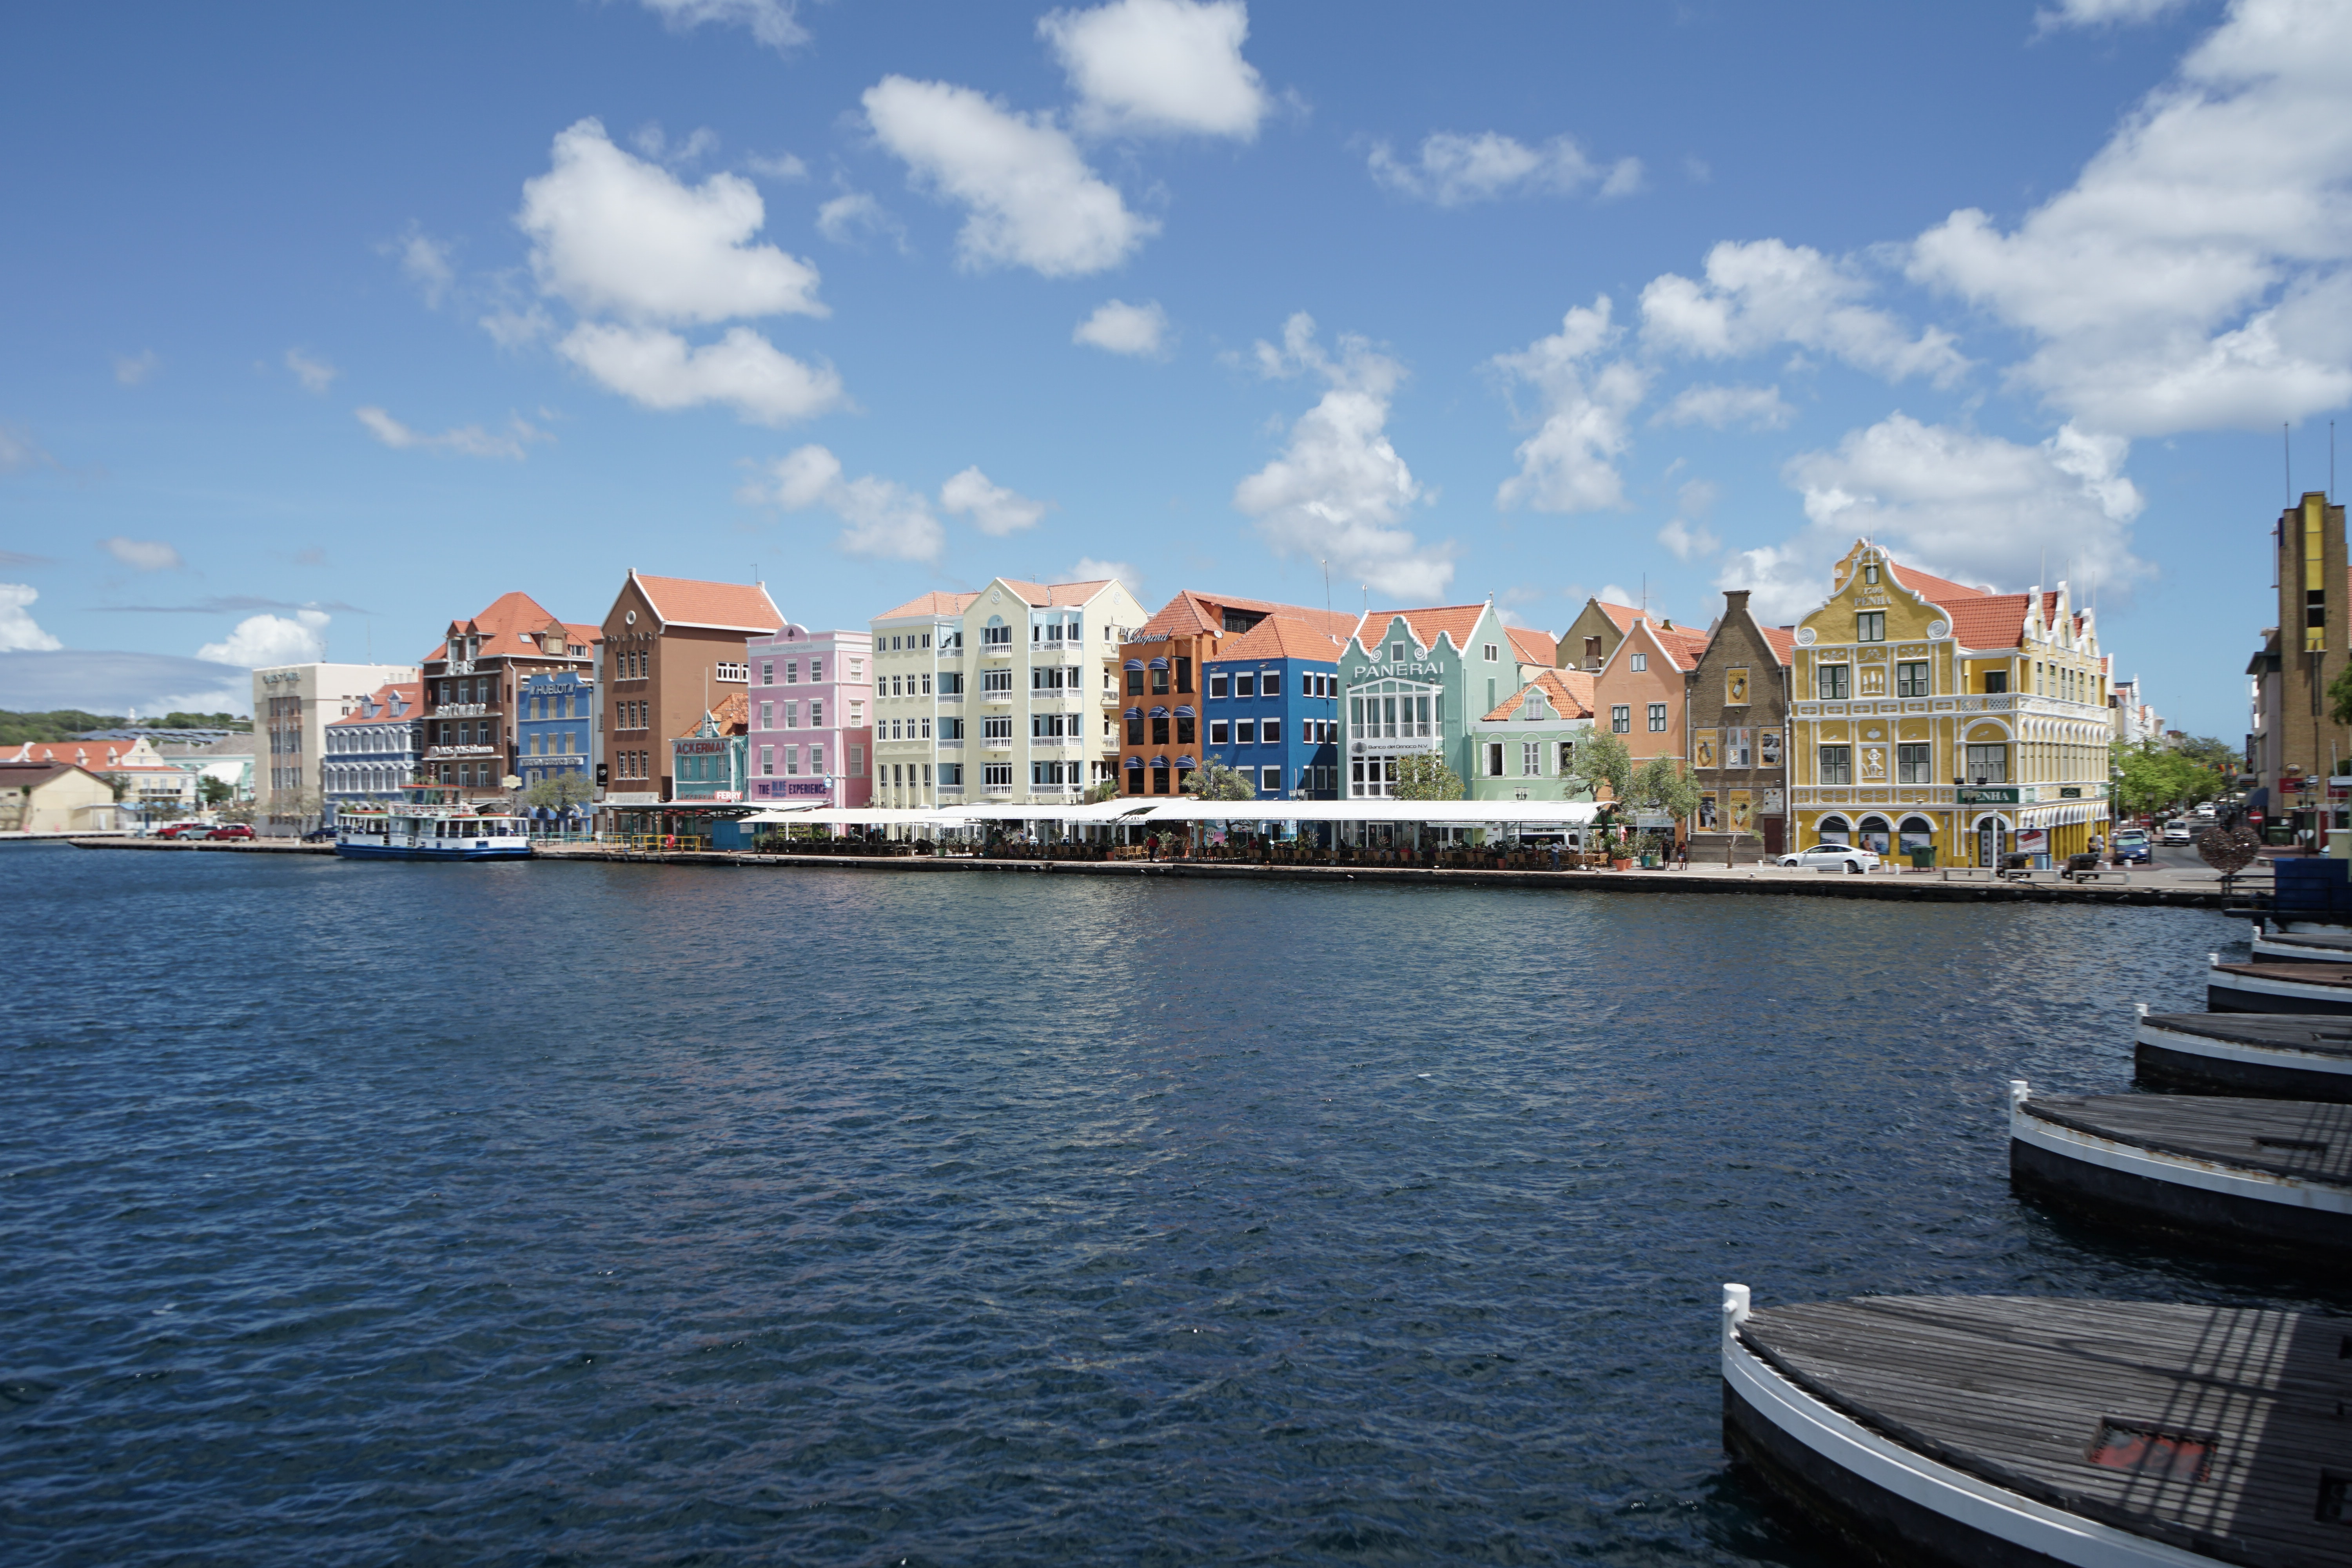 Colorful Willemstad Photo by John de Jong